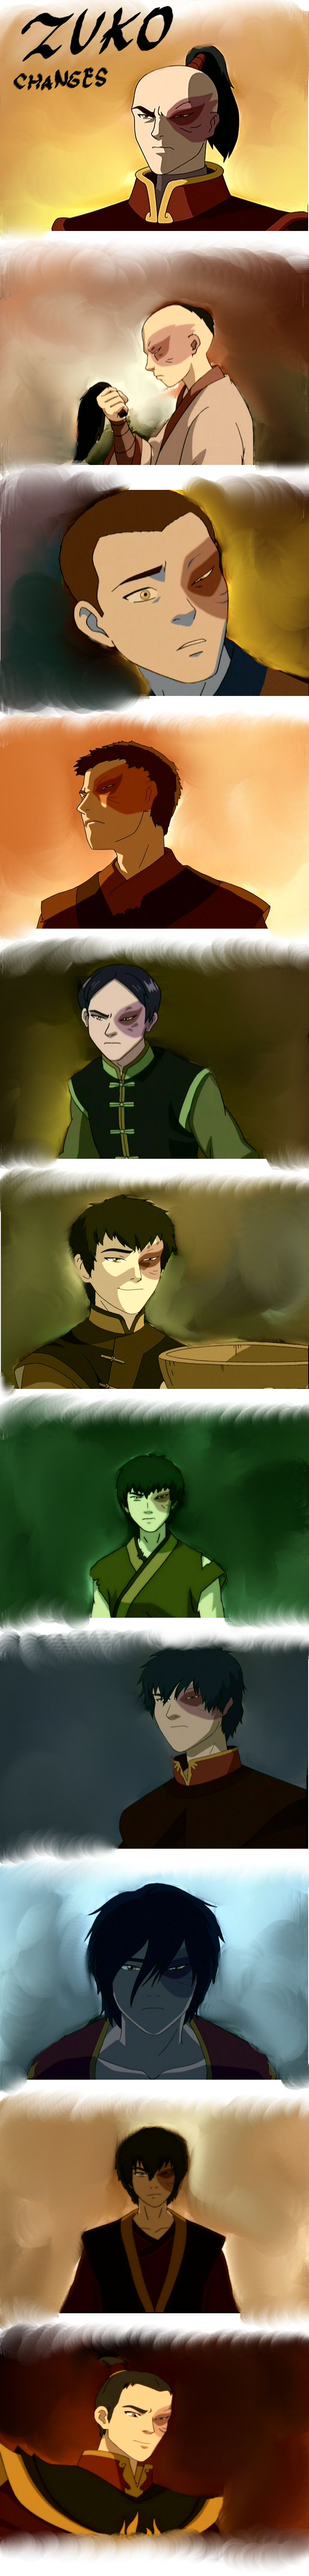 Zuko Changes: proof that your hair truly DOES matter>>> I think that it's nice how he smiles at the end